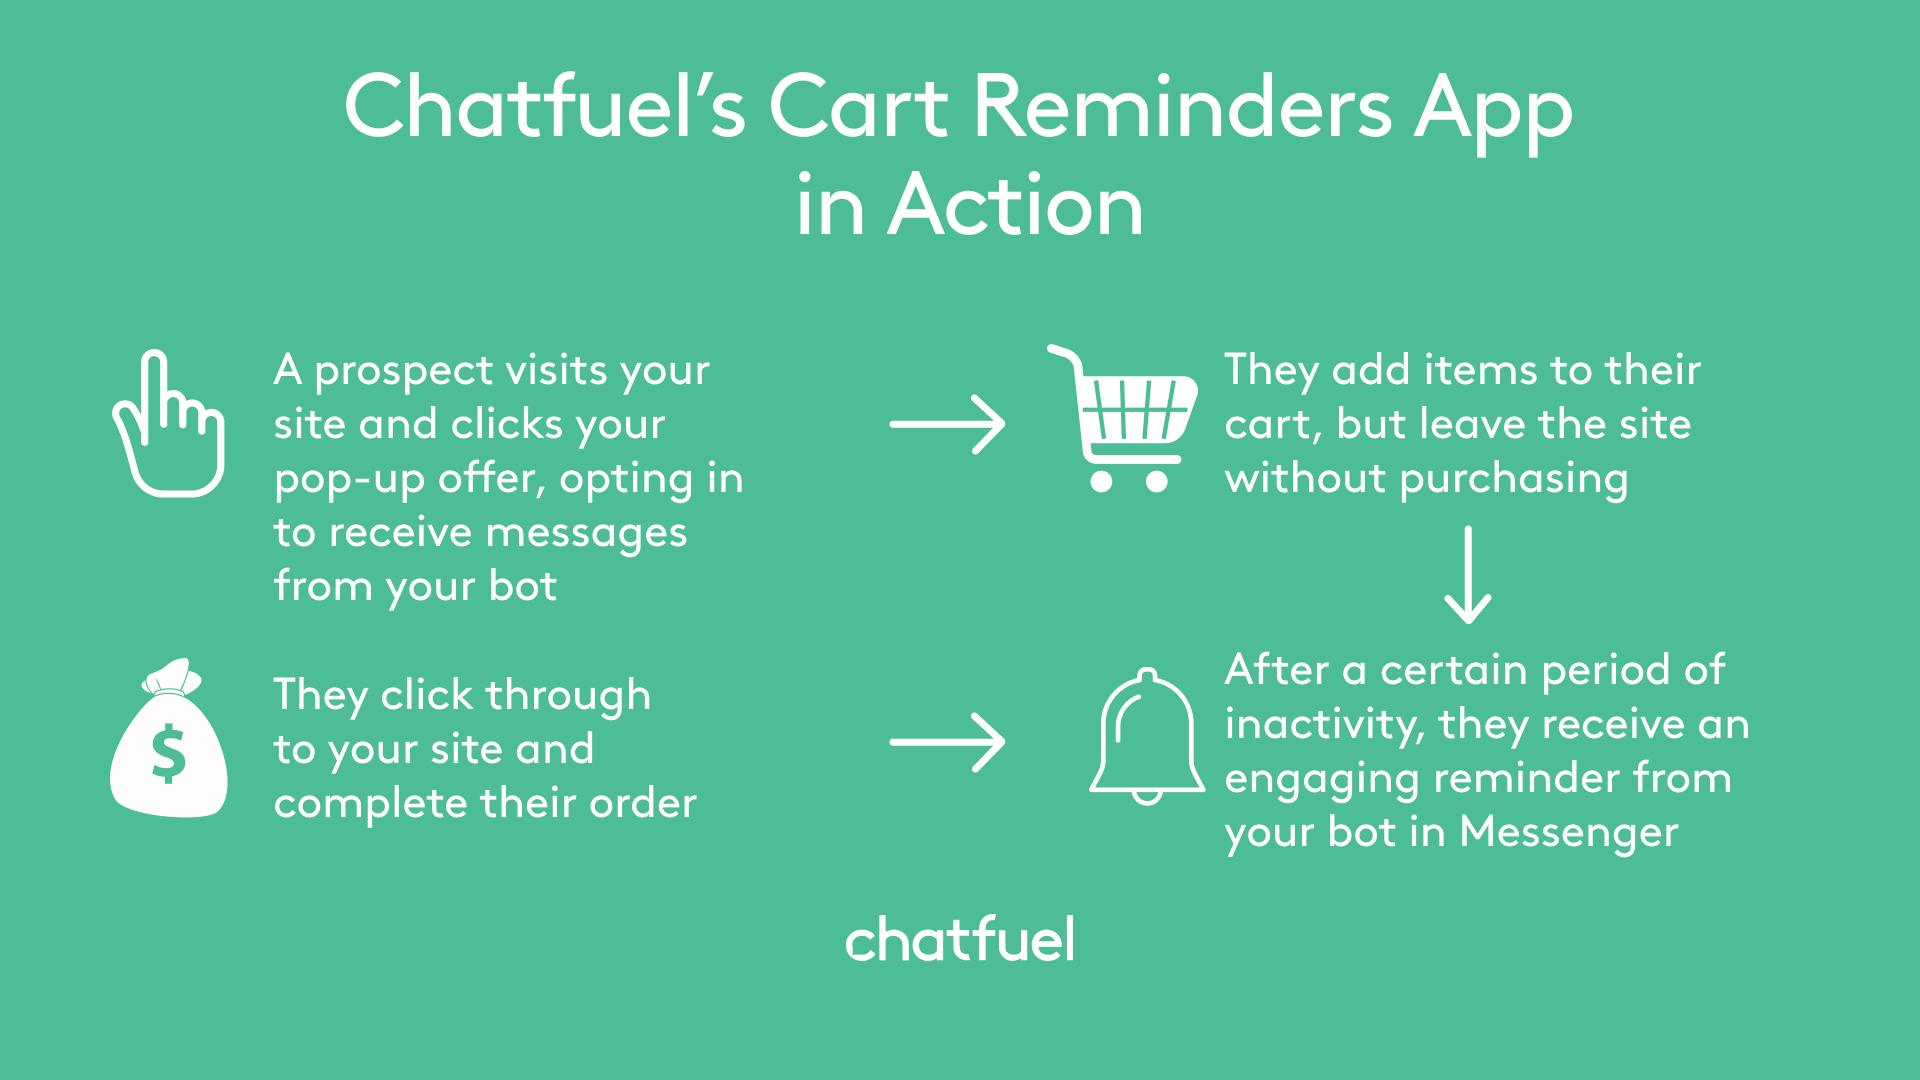 How to Maximize Shopping Cart Conversions With a Chatbot